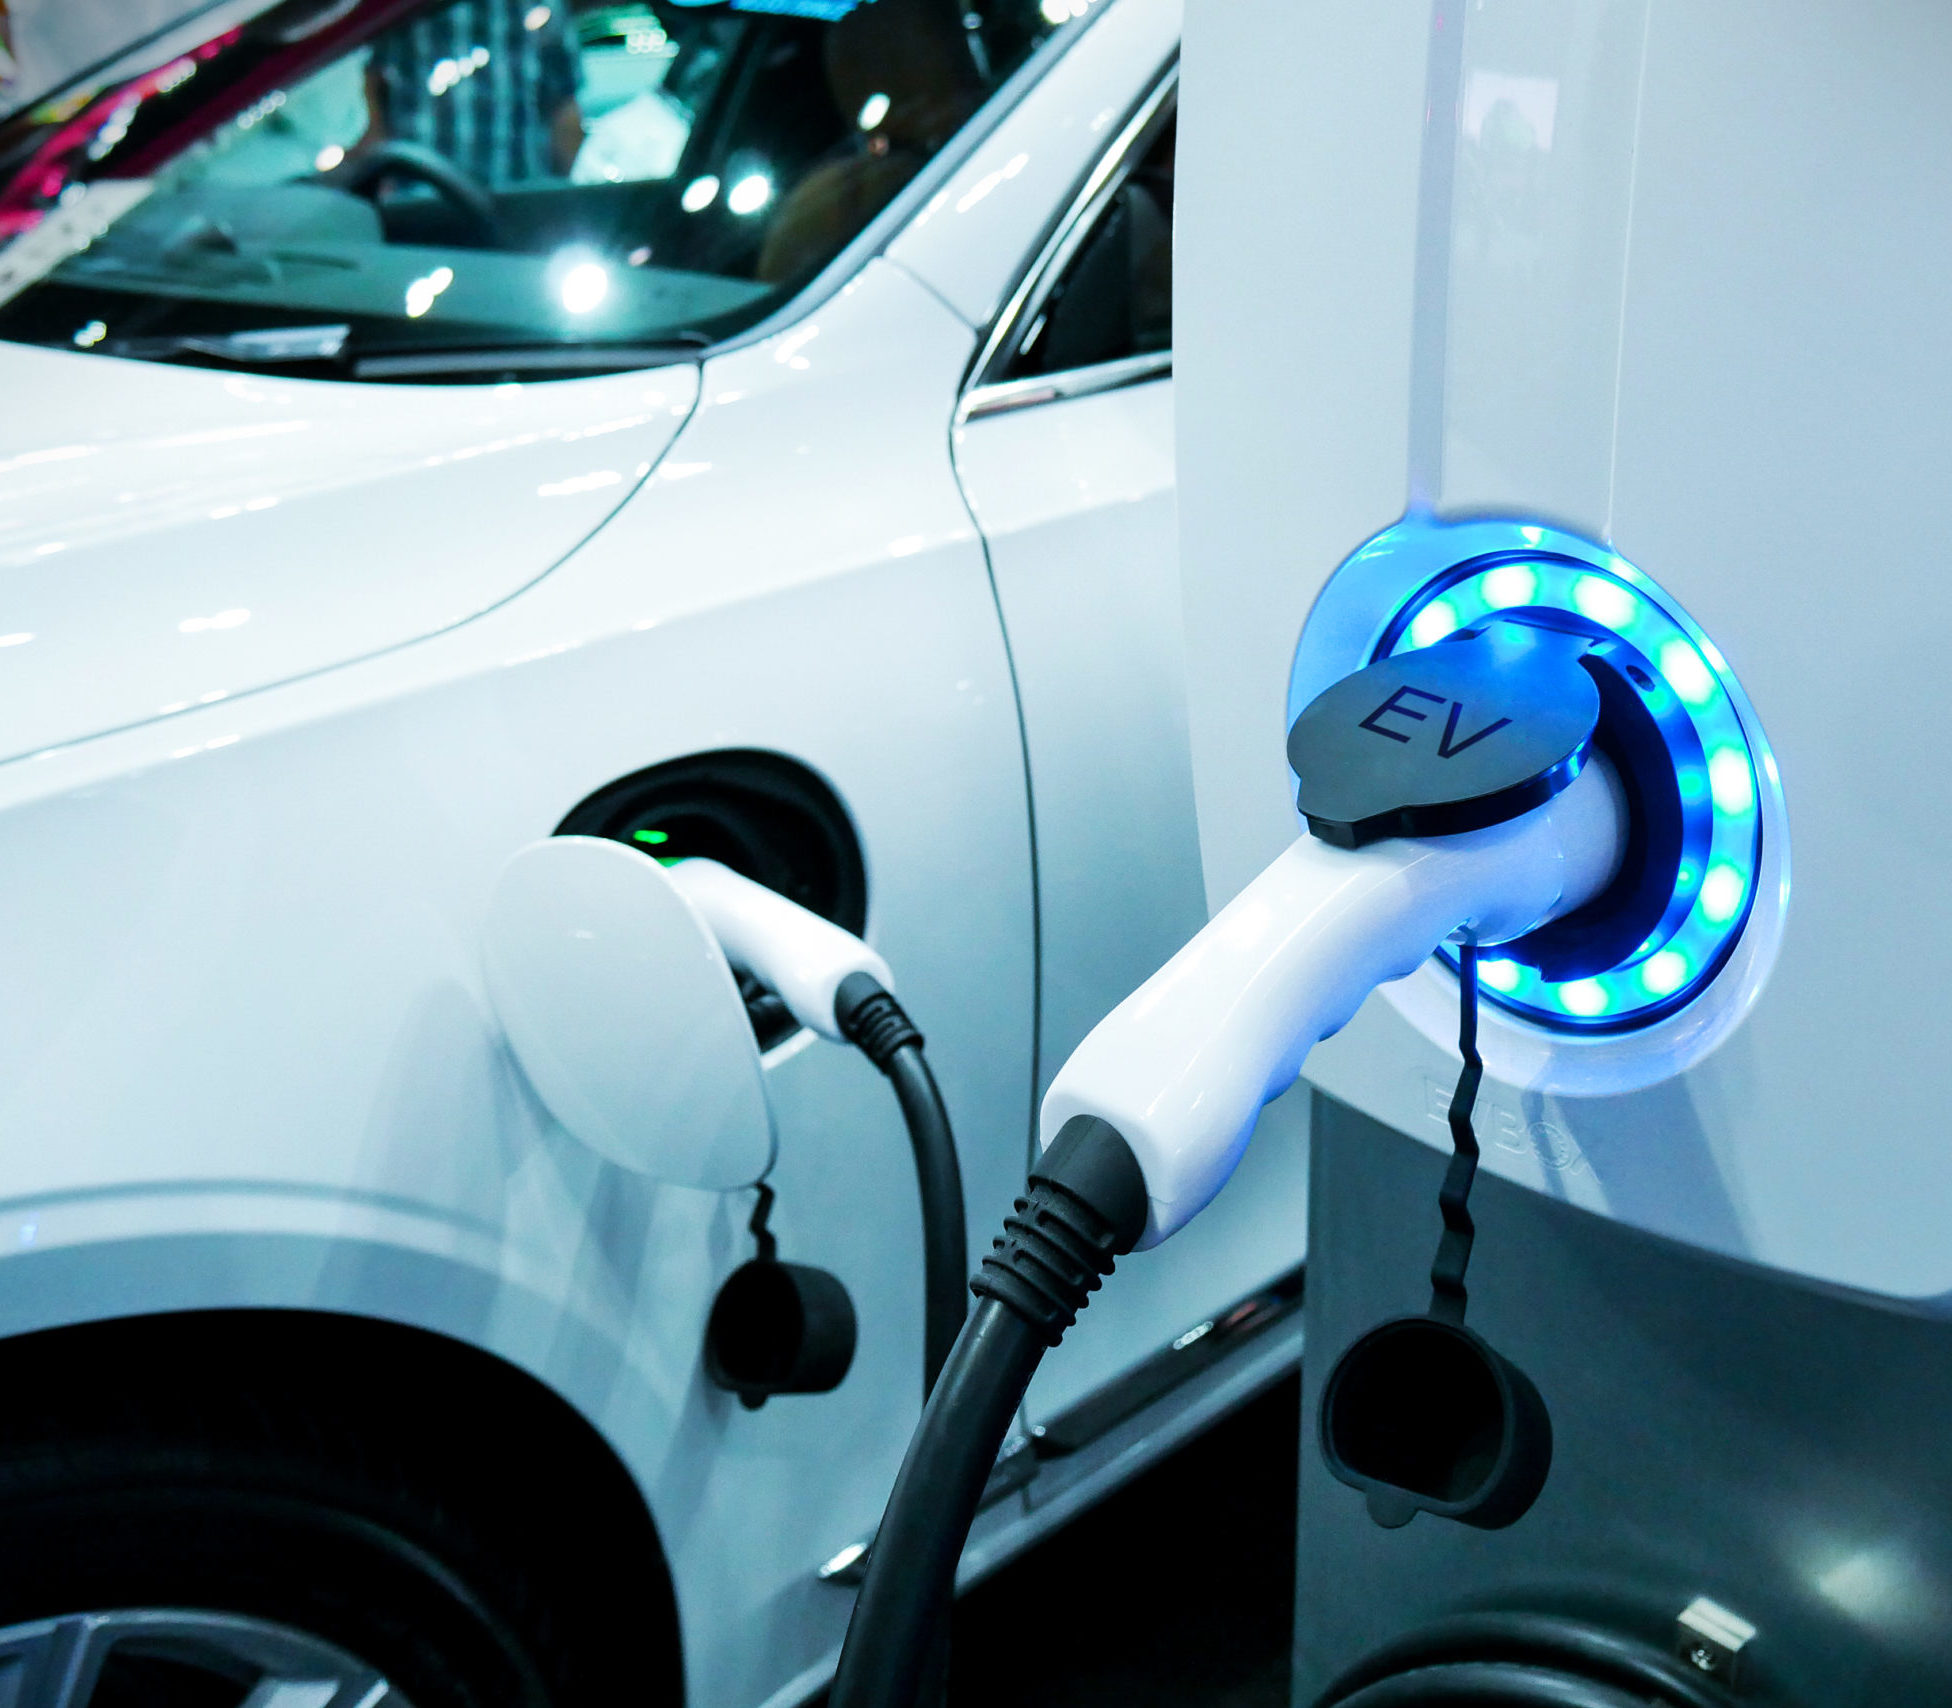 With more and more electric vehicles gracing the roads, does your garage understand the needs for electric vehicle maintenance?